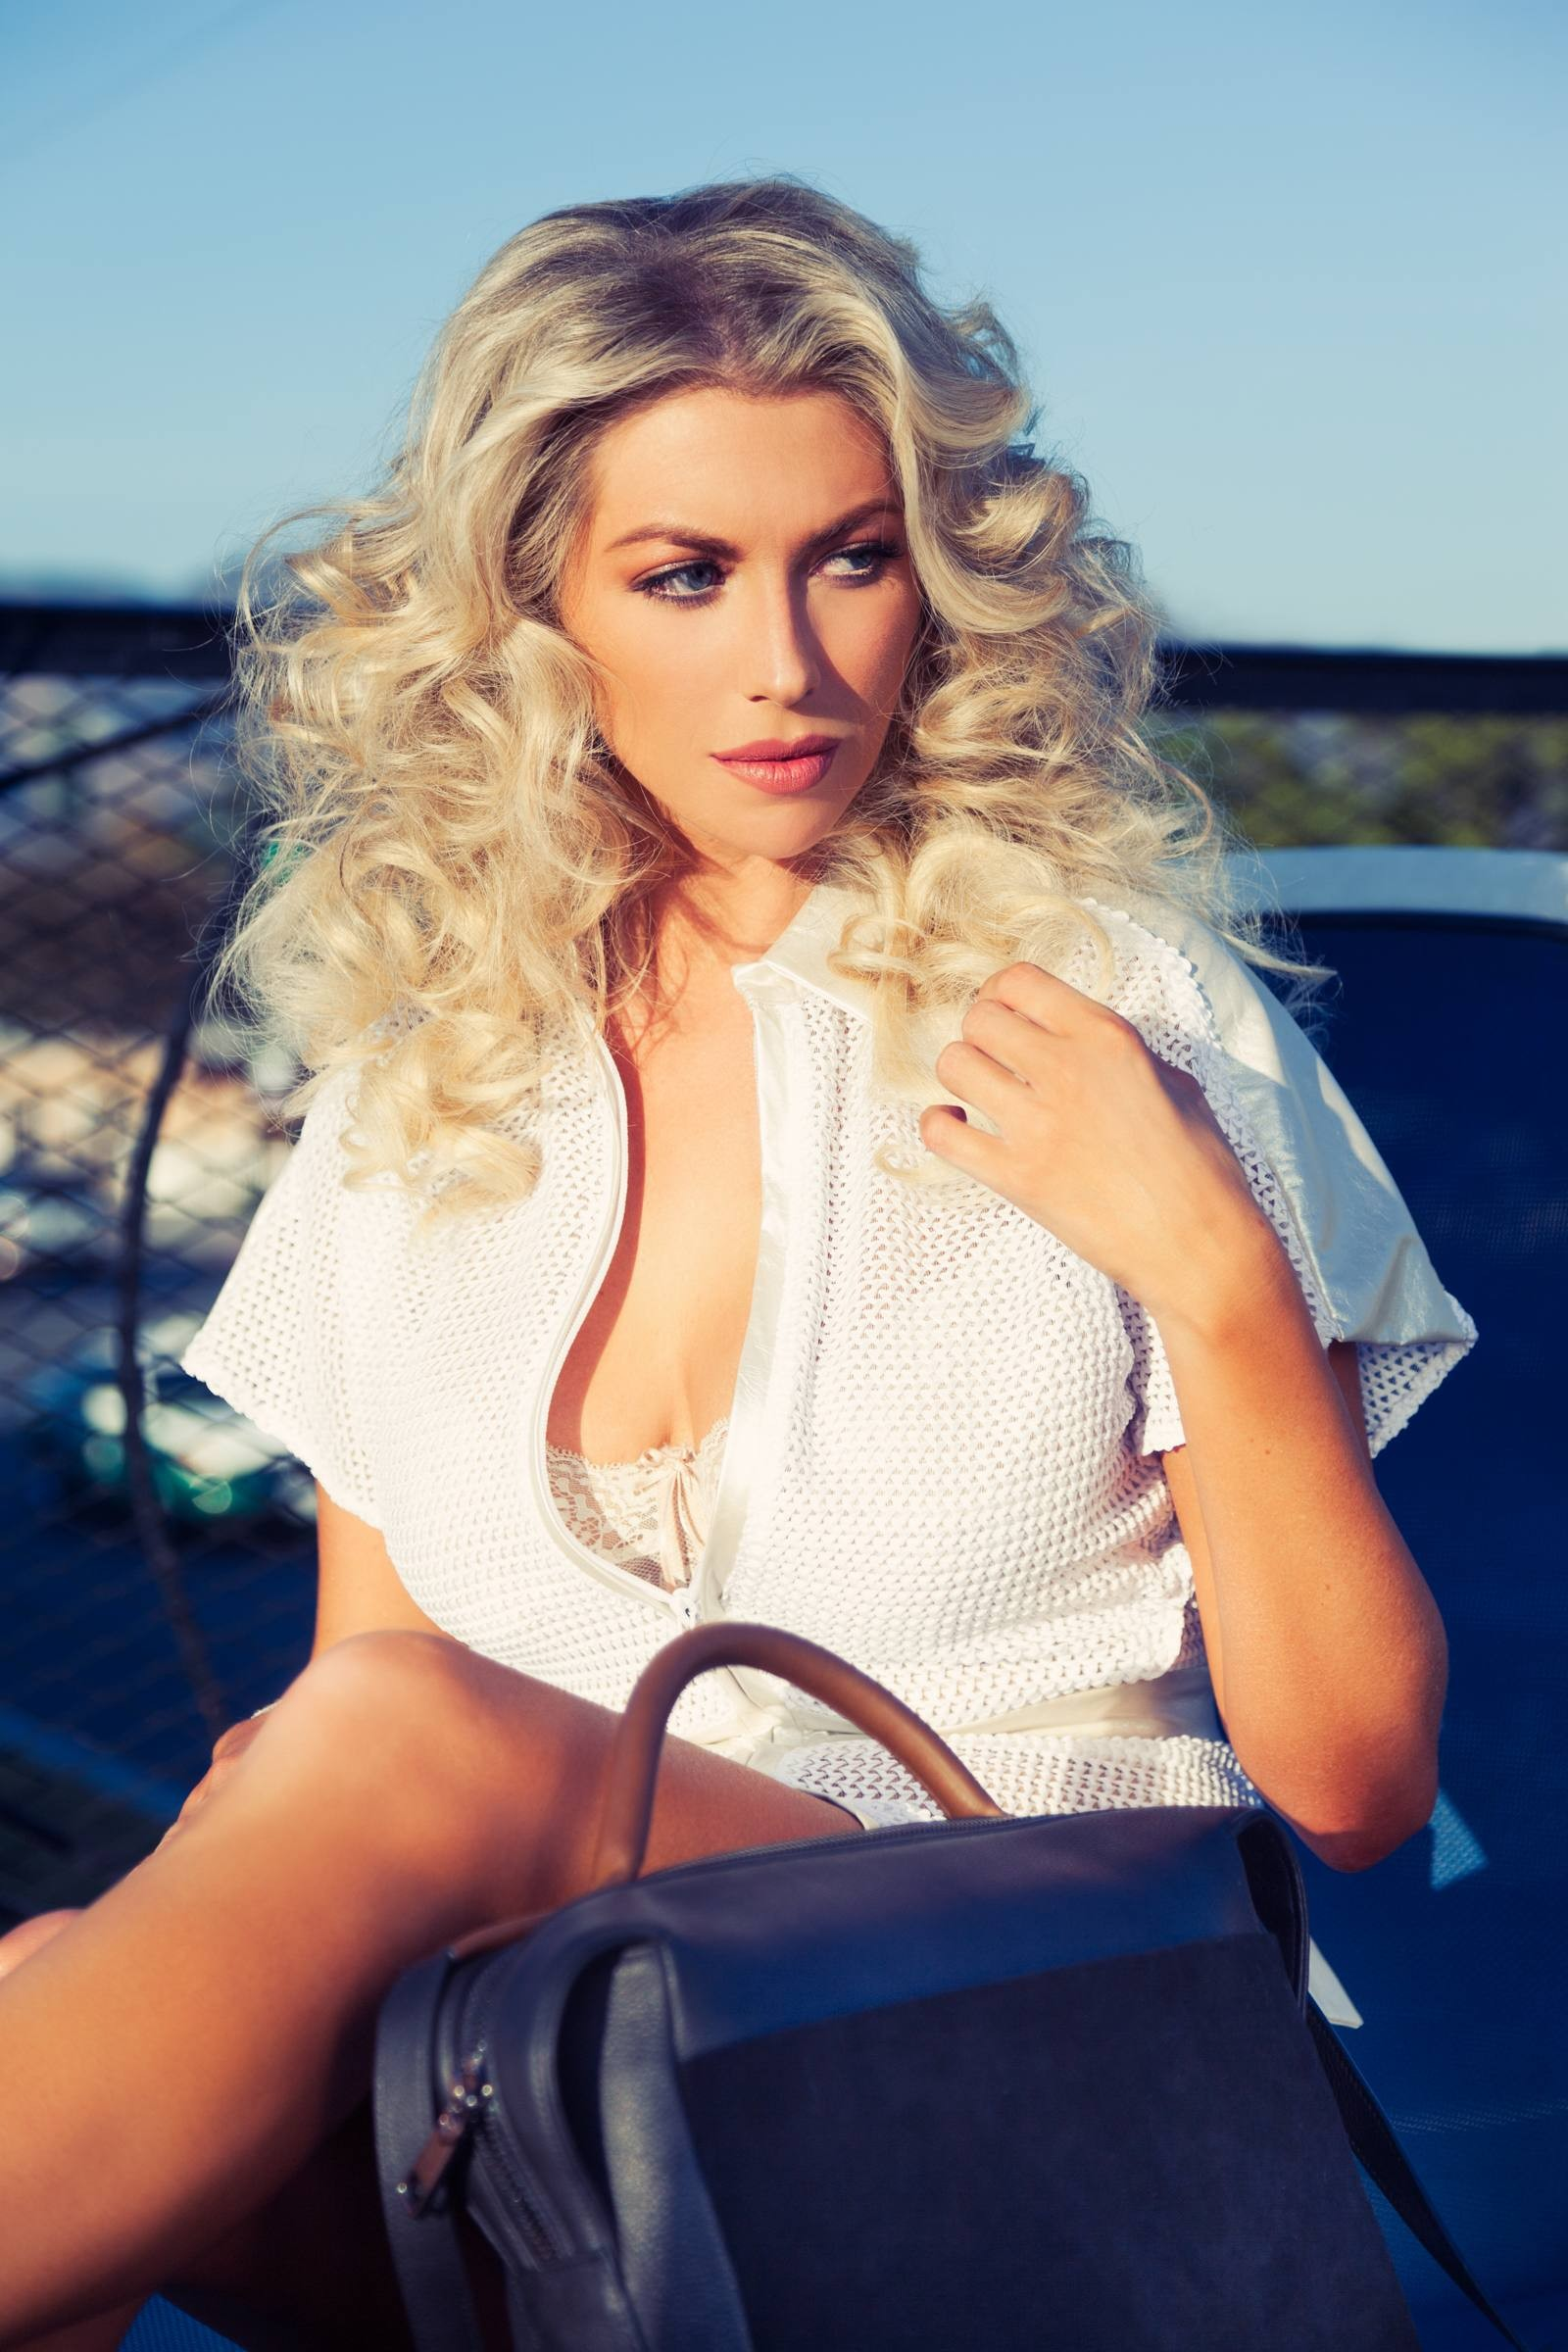 The Beauty Wrap Up with Stassi Schroeder